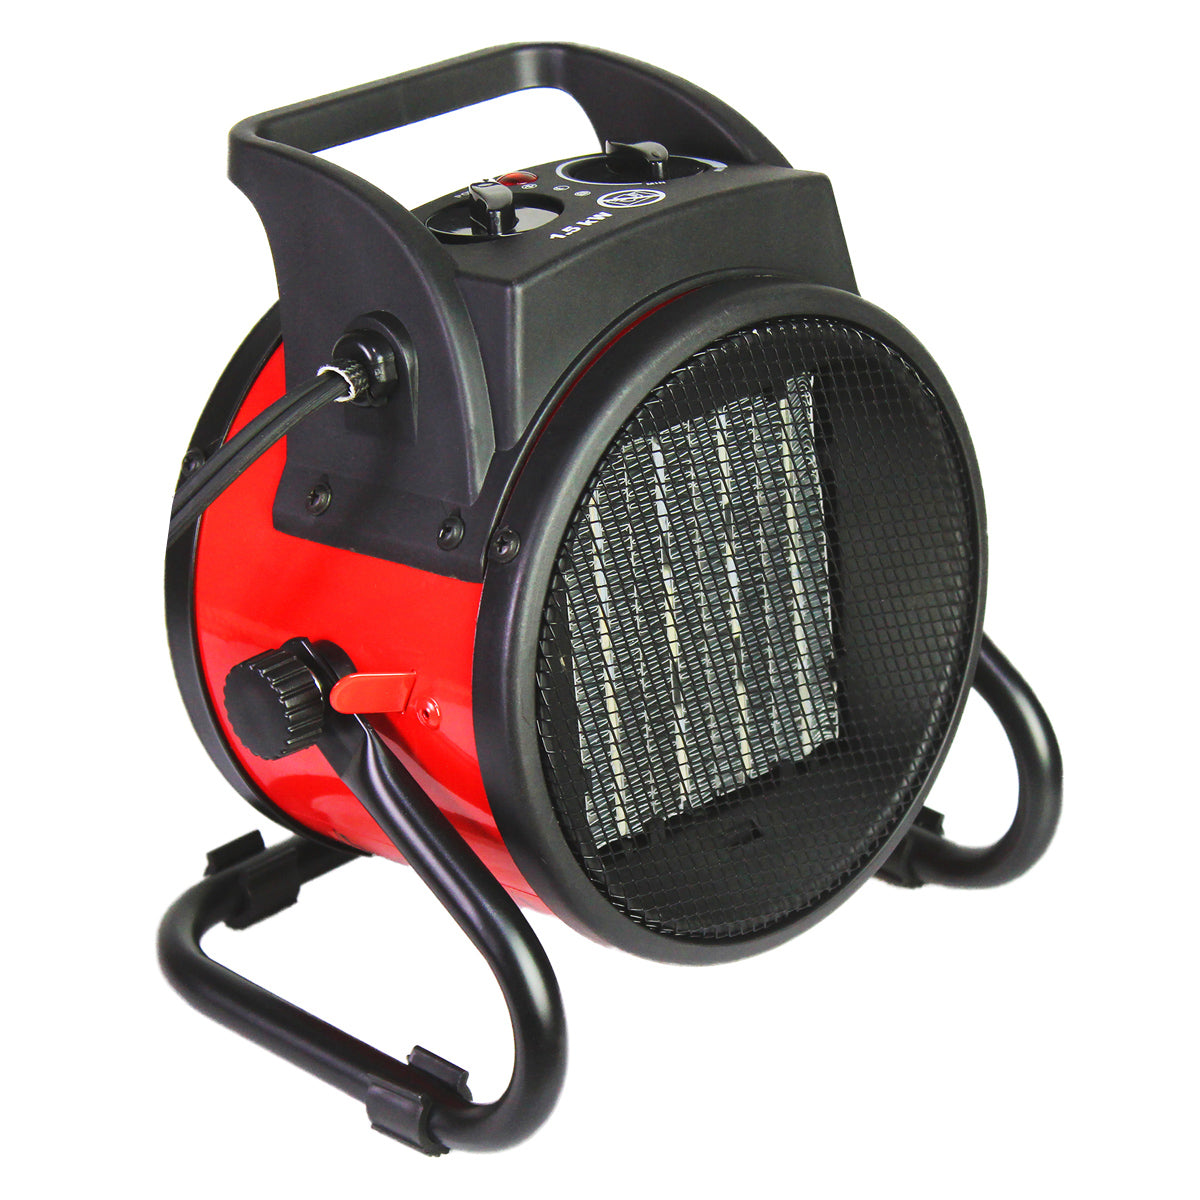 The HeTR 7 in. ceramic heater quickly warms up small college rooms and can also be used in warmer weather.